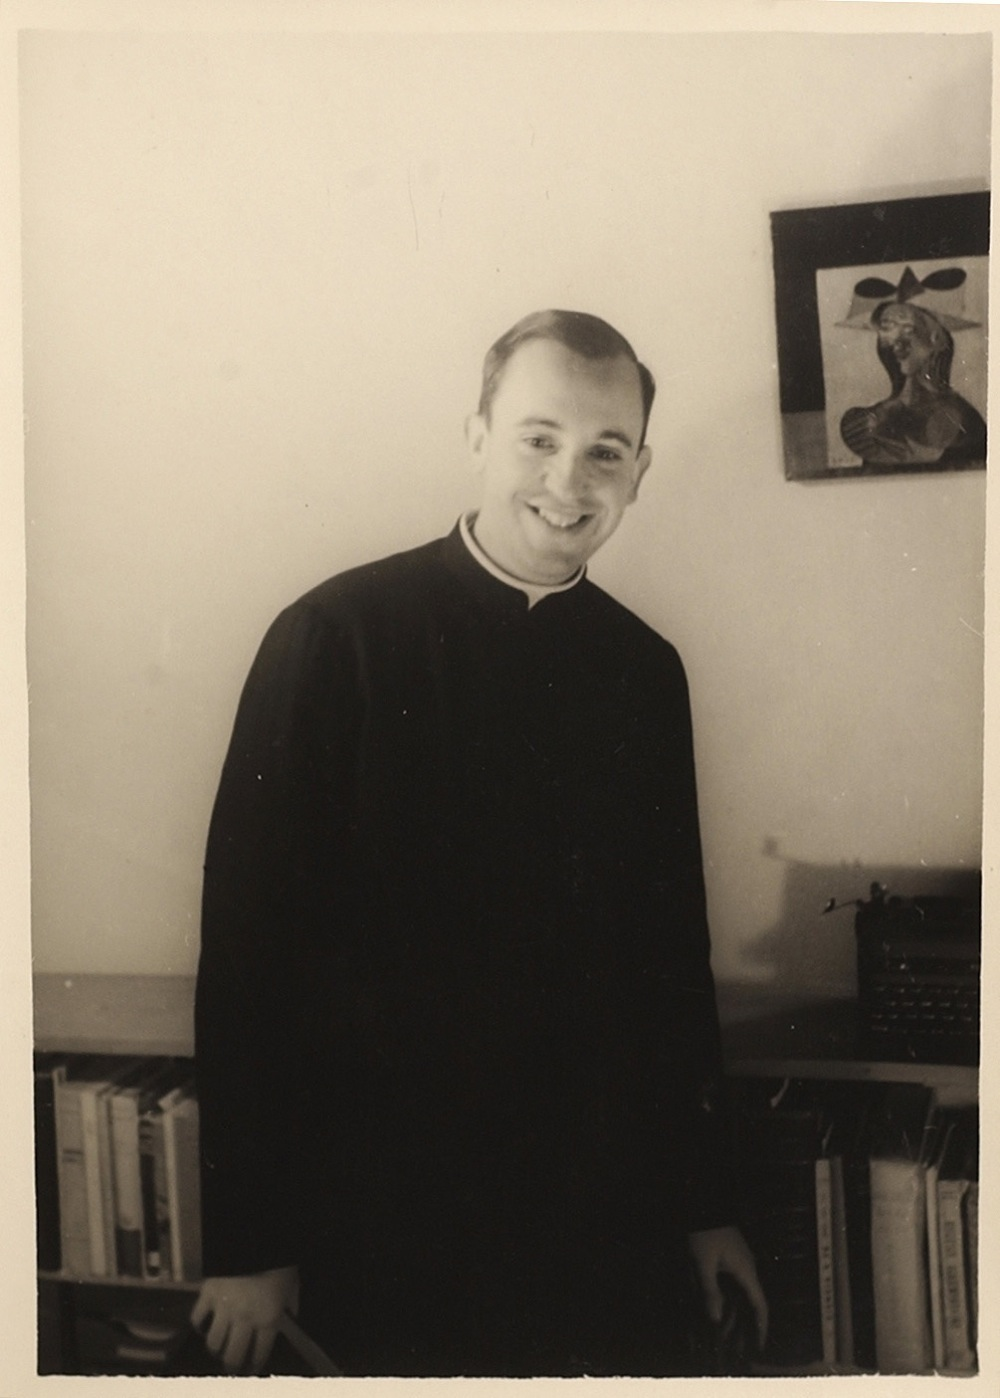 In this 1966 photo released by the El Salvador School, Argentine seminarian Jorge Mario Bergoglio smiles for a portrait at the El Salvador school where he taught literature and psychology in Buenos Aires, Argentina. Bergoglio was elected pope on Wednesday, March 13, 2013, making him the first pope ever from the Americas.  Bergoglio, who was born in 1936, chose the name Pope Francis. (AP Photo/El Salvador School)